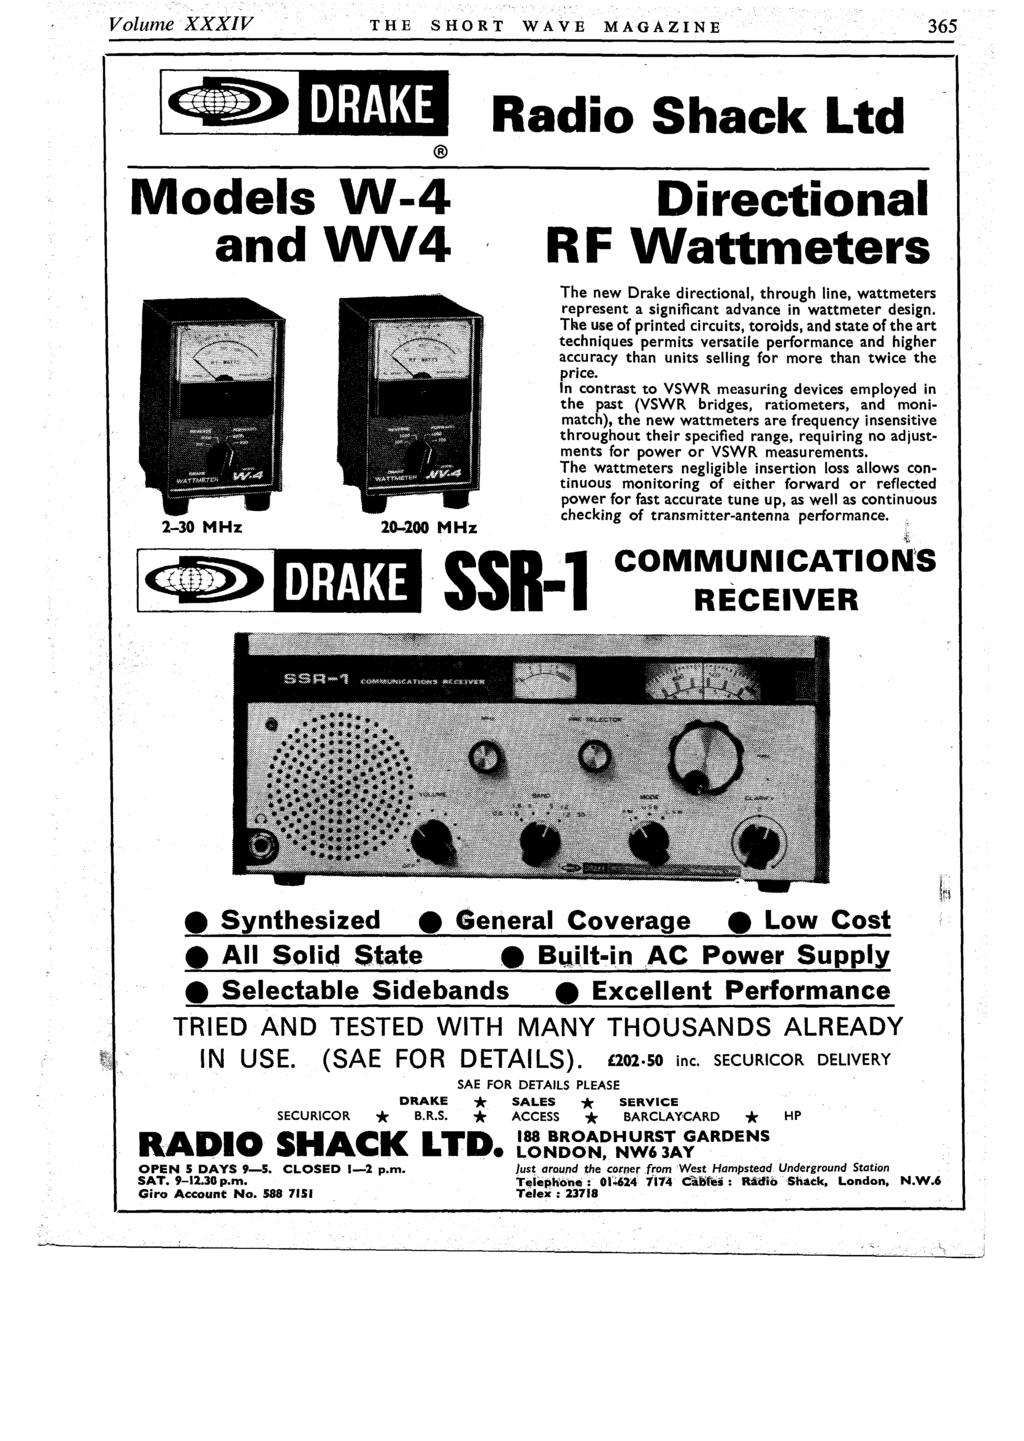 Granby Halls Amateur Radio Exhibition Leicester 28 29 30 October Zn414 Portable Am Receiver Volume Xxxiv The Short Wave Magazine 365 Drake Models W 4 Nd Wv4 2